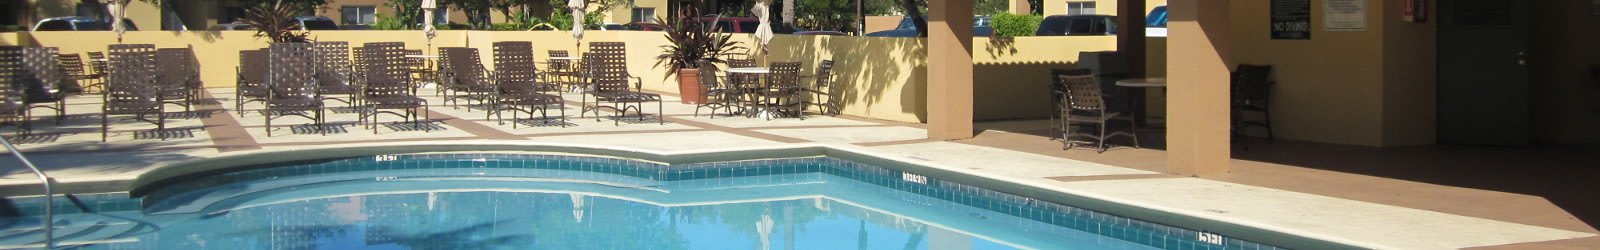 Amenities offered at our apartments in Hialeah